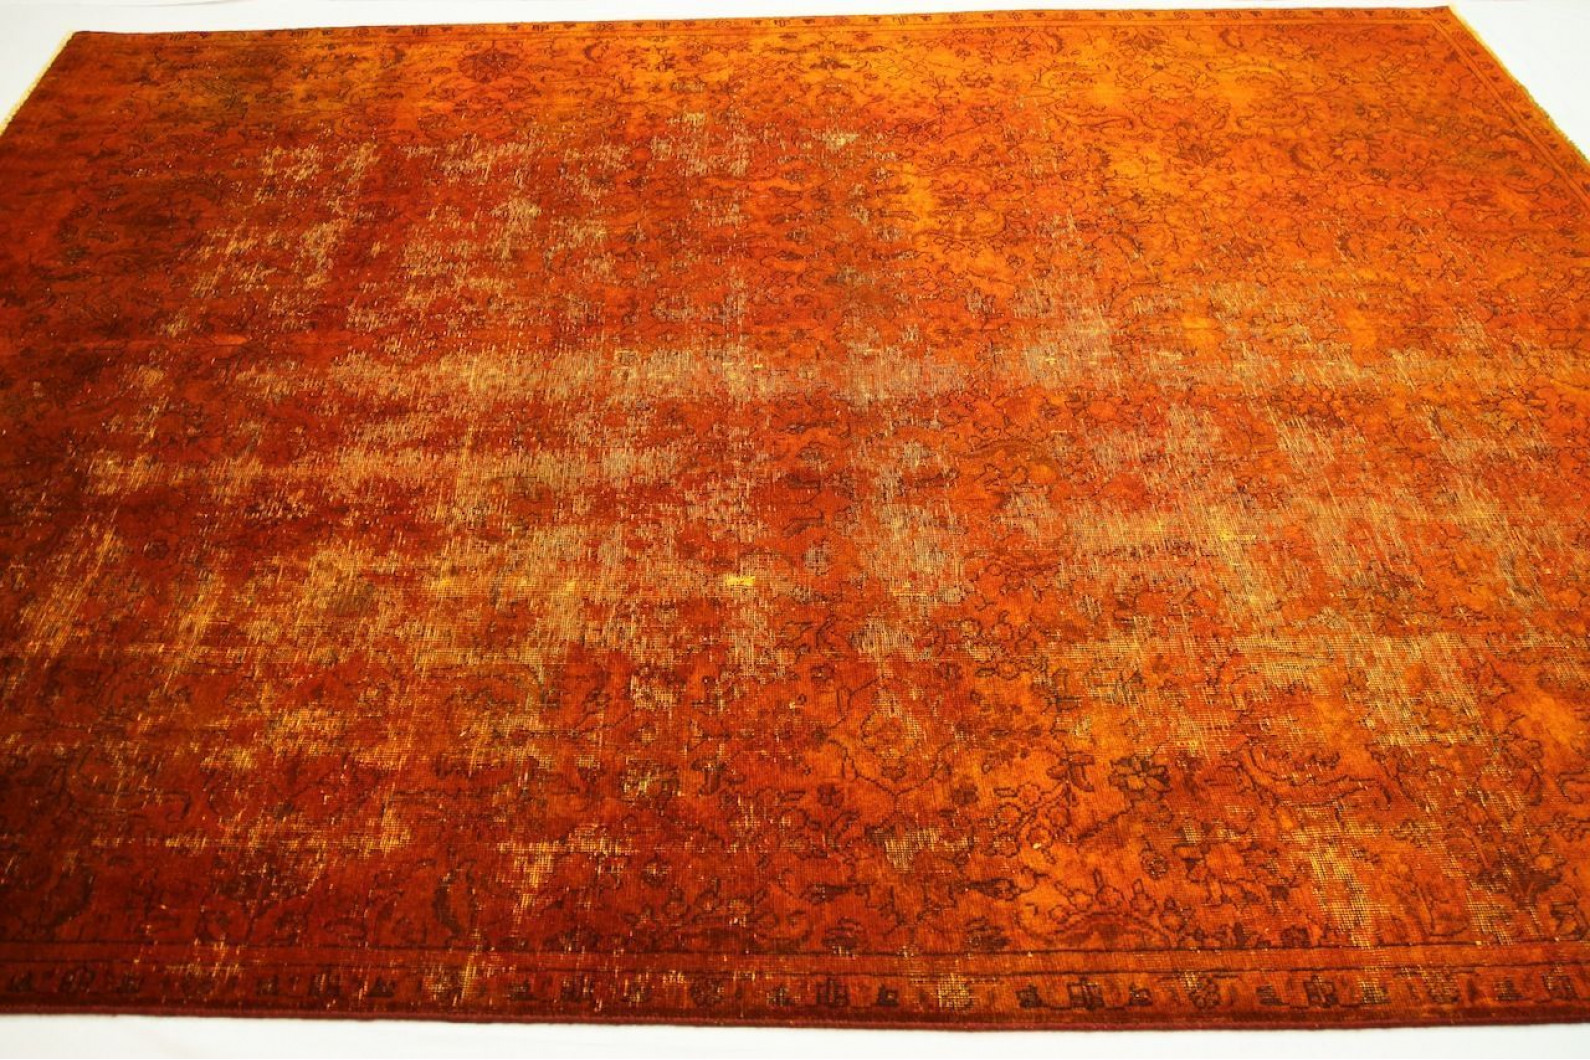 Teppich Orange Vintage Teppich Orange In 330x250cm 1001 2696 Bei